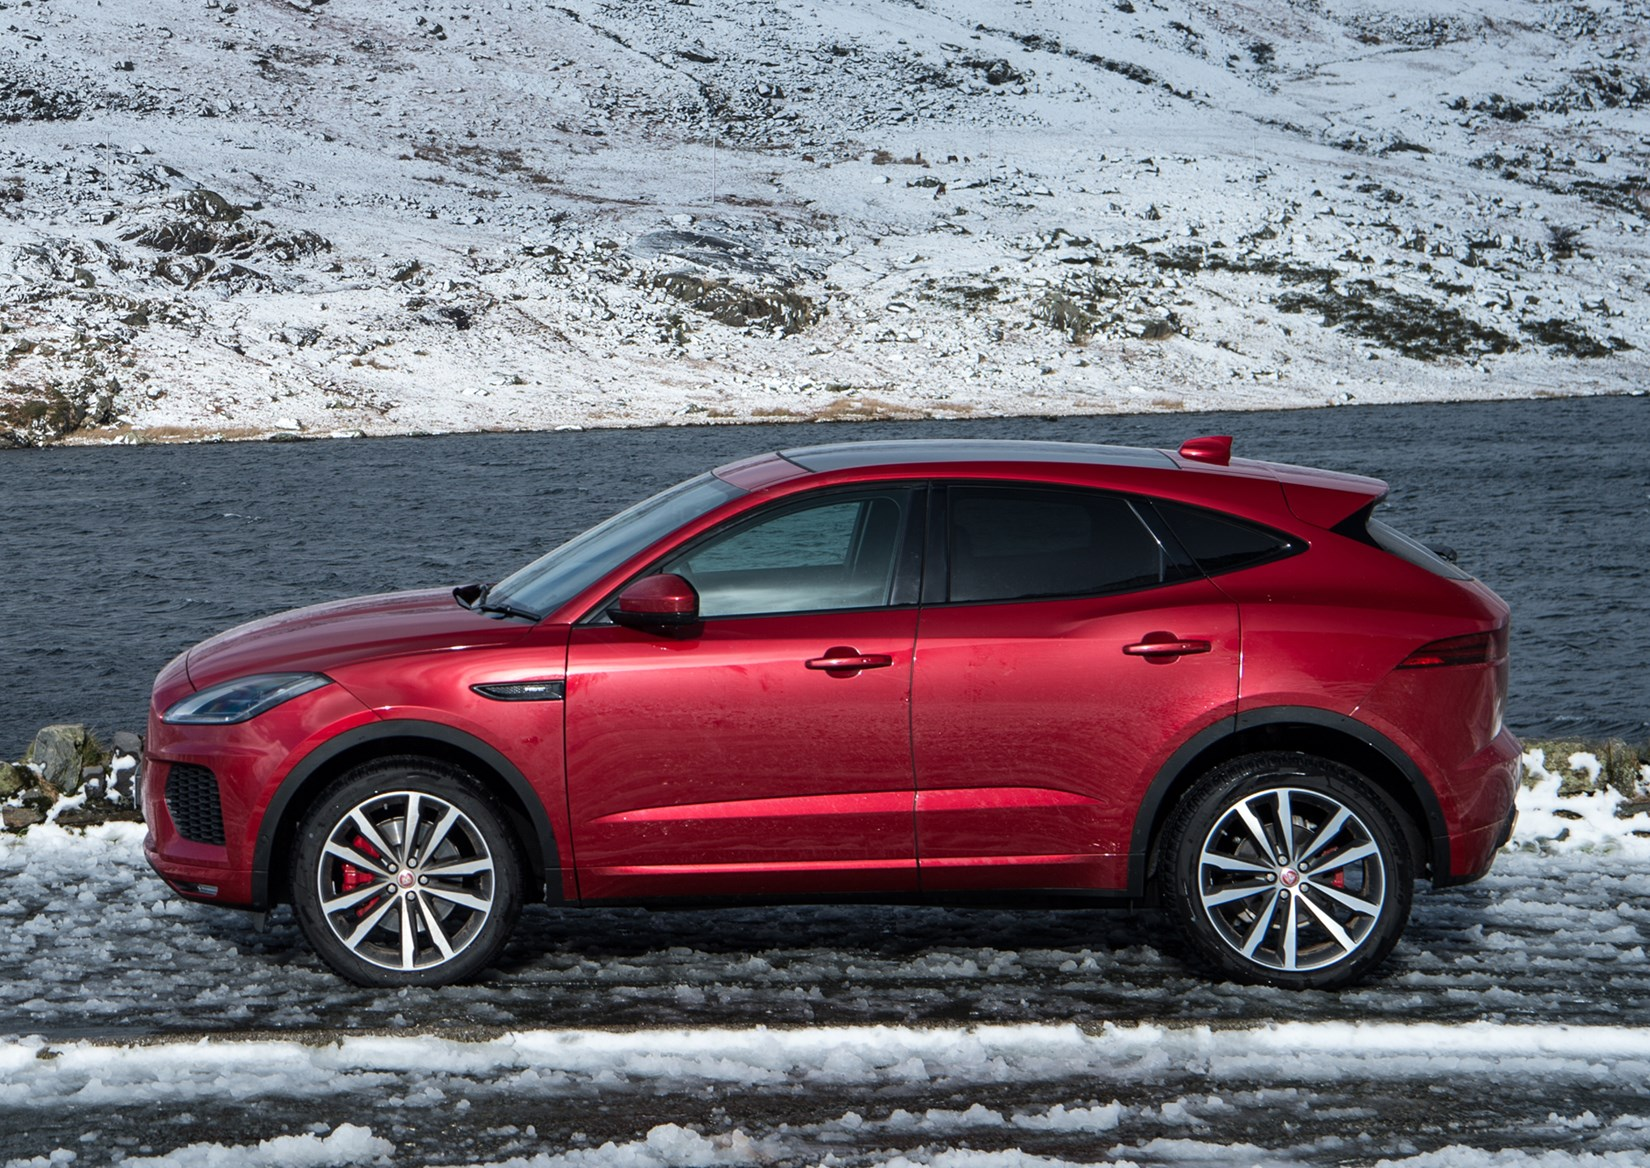 Red 2017 Jaguar E-Pace SUV side elevation in snow